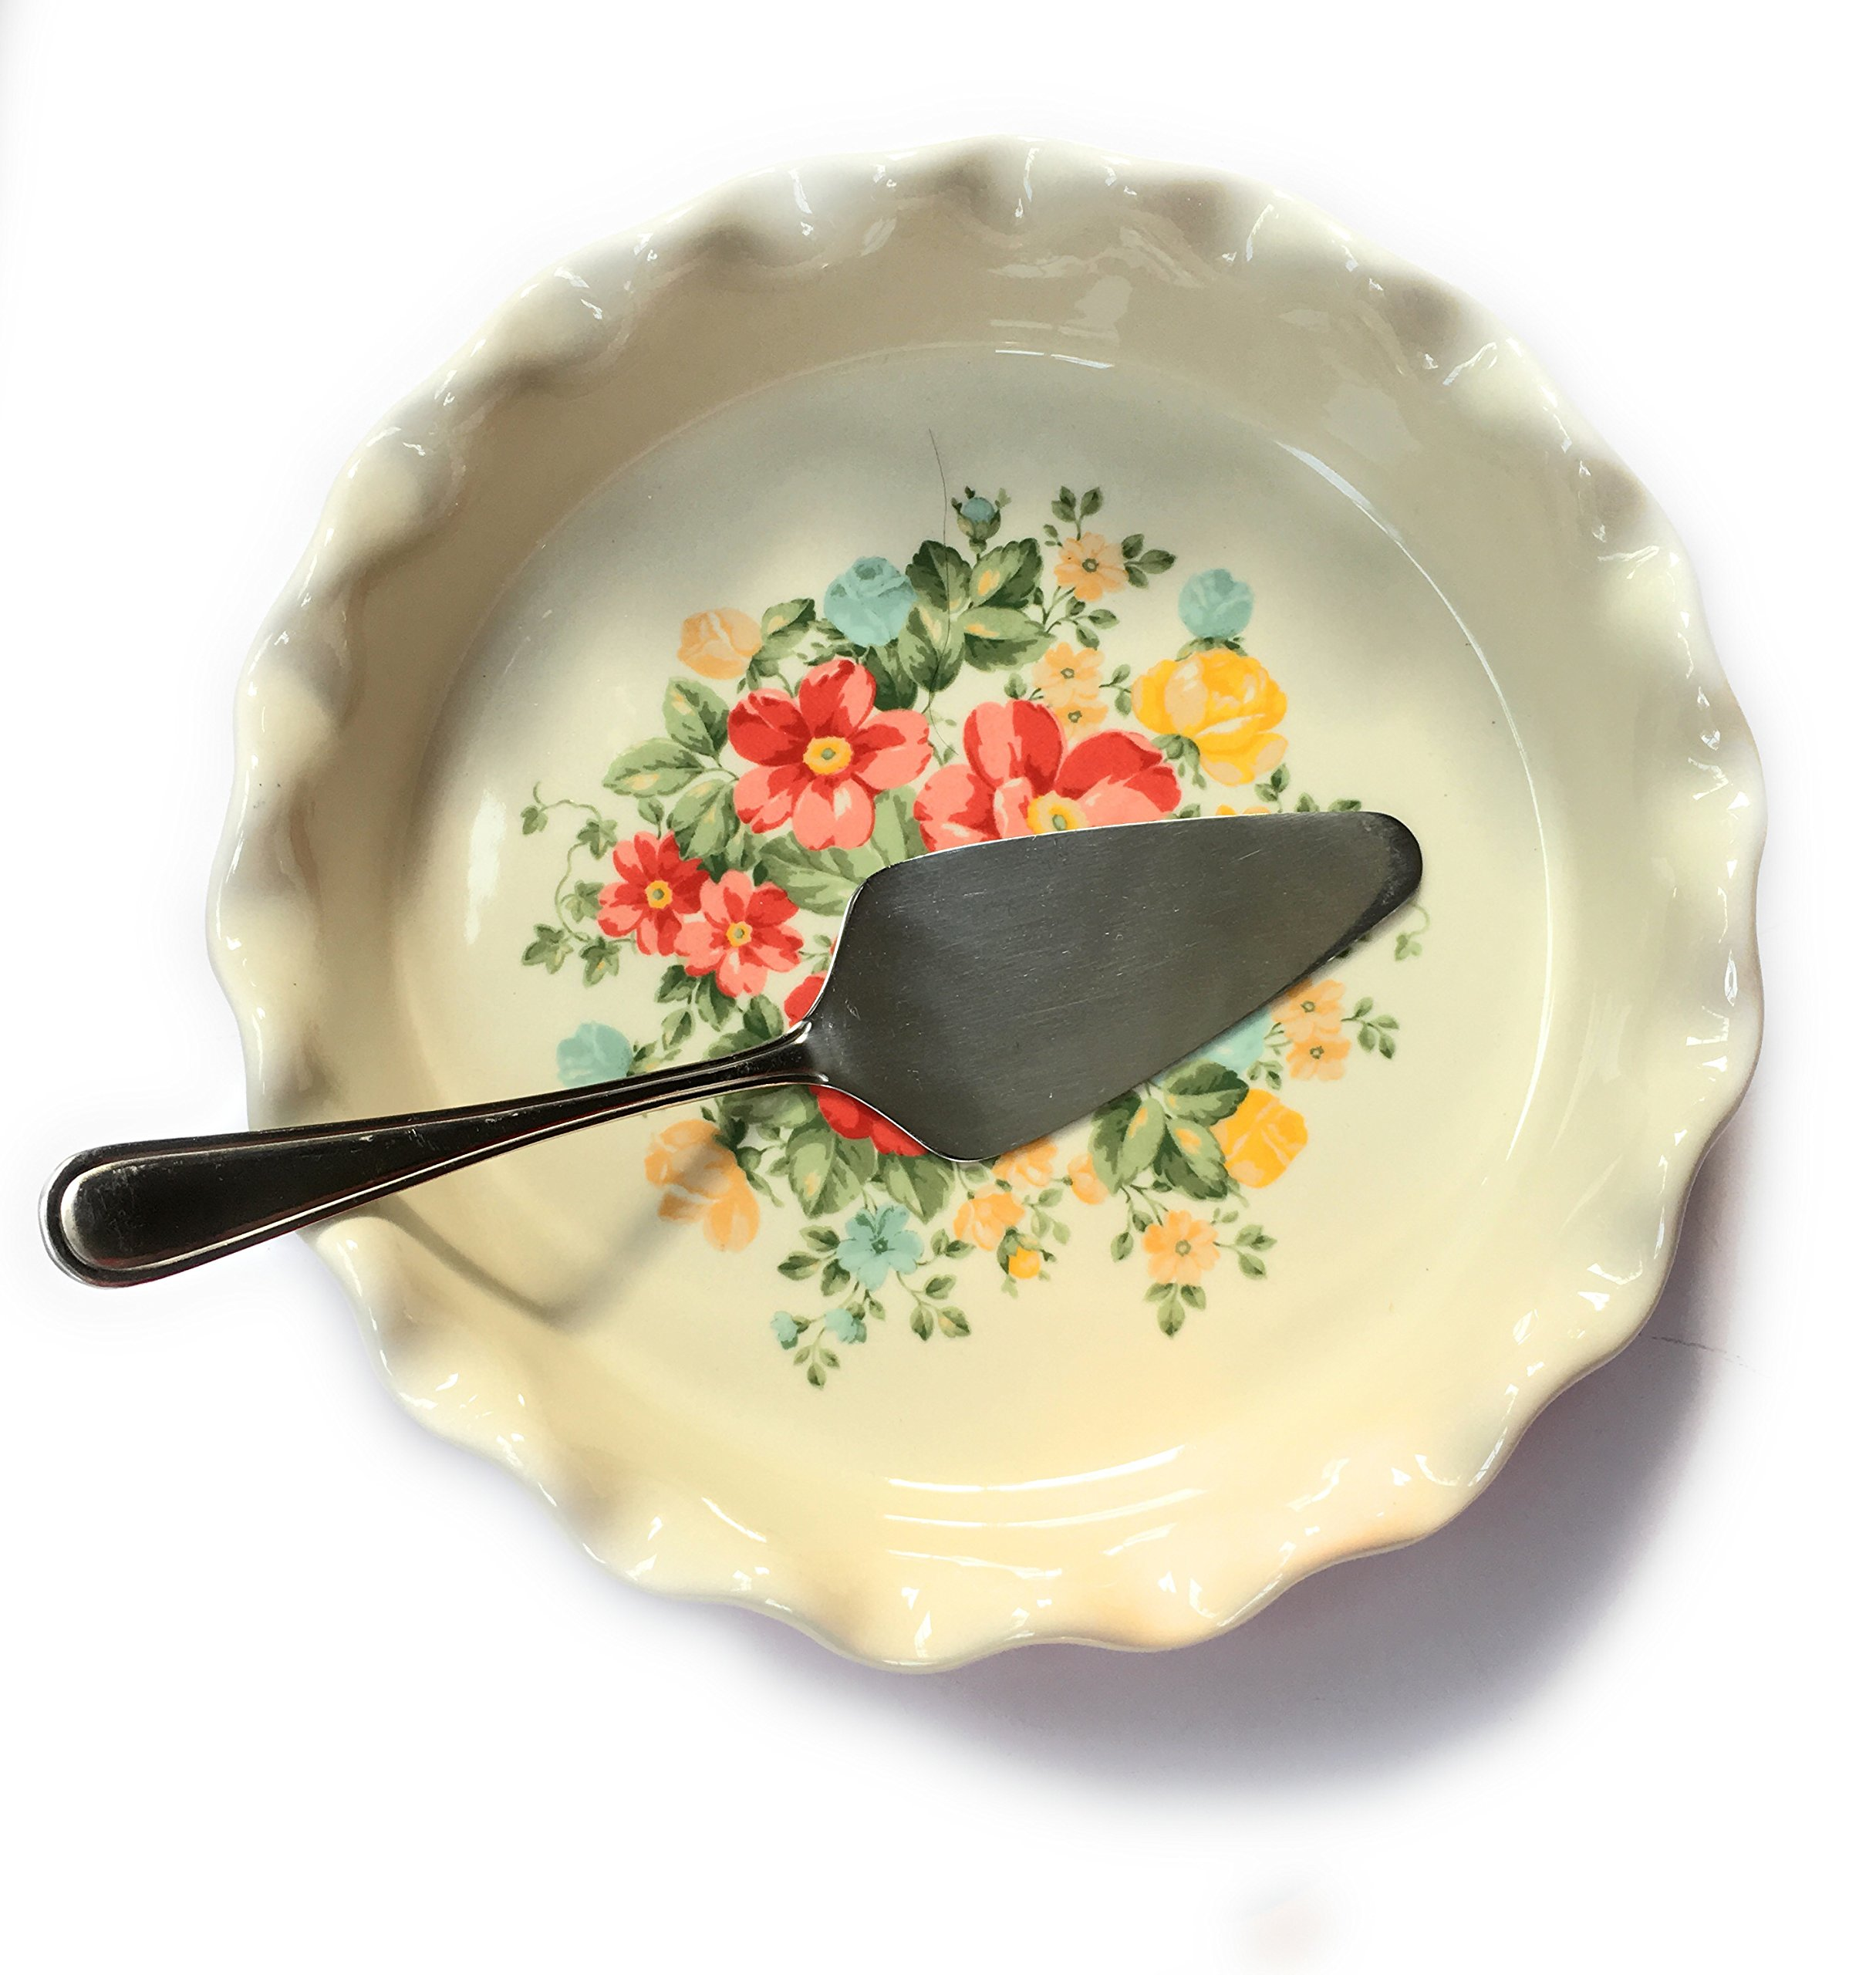 """Pioneer Woman BEAUTIFUL RED 9"""" Pie Baking Dish with a Red BASE AND CREAMY WHITE INTERIOR WITH A WHIMSICAL FLORAL PATTERN AND Mainstays STAINLESS STEEL PIE CAKE SERVER GREAT GIFTS BAKERS AND COOKS FOR"""